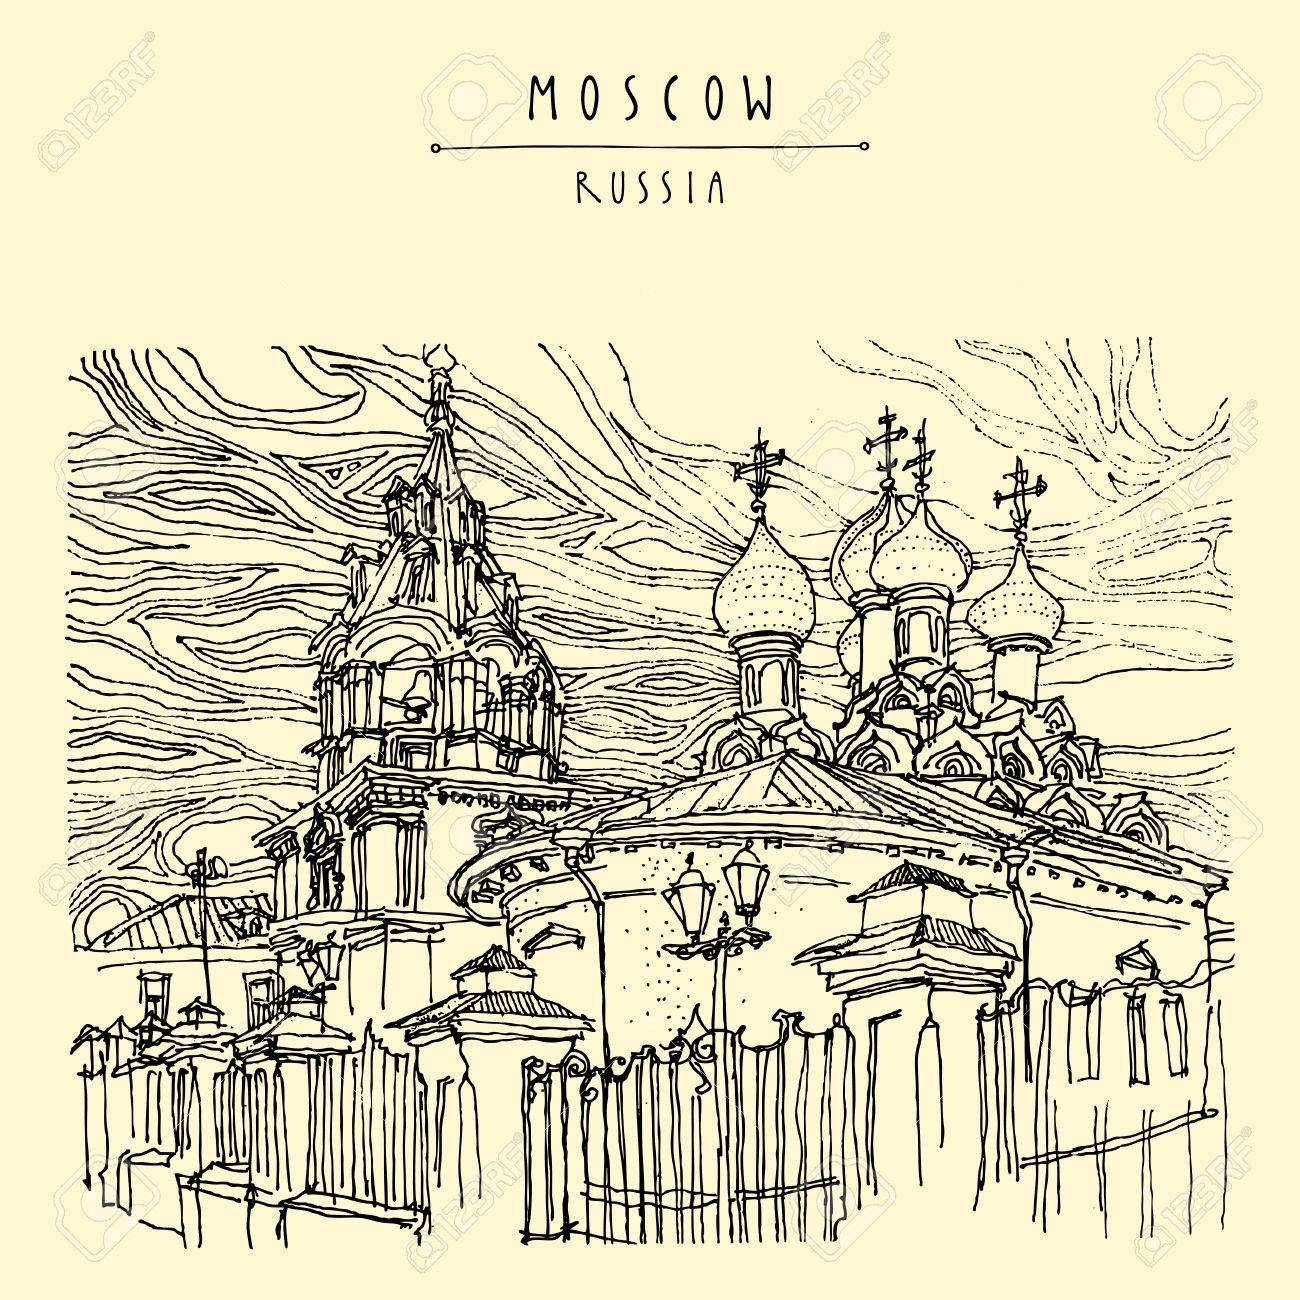 Russian Orthodox Church In Moscow, Russia Vintage Hand Drawn